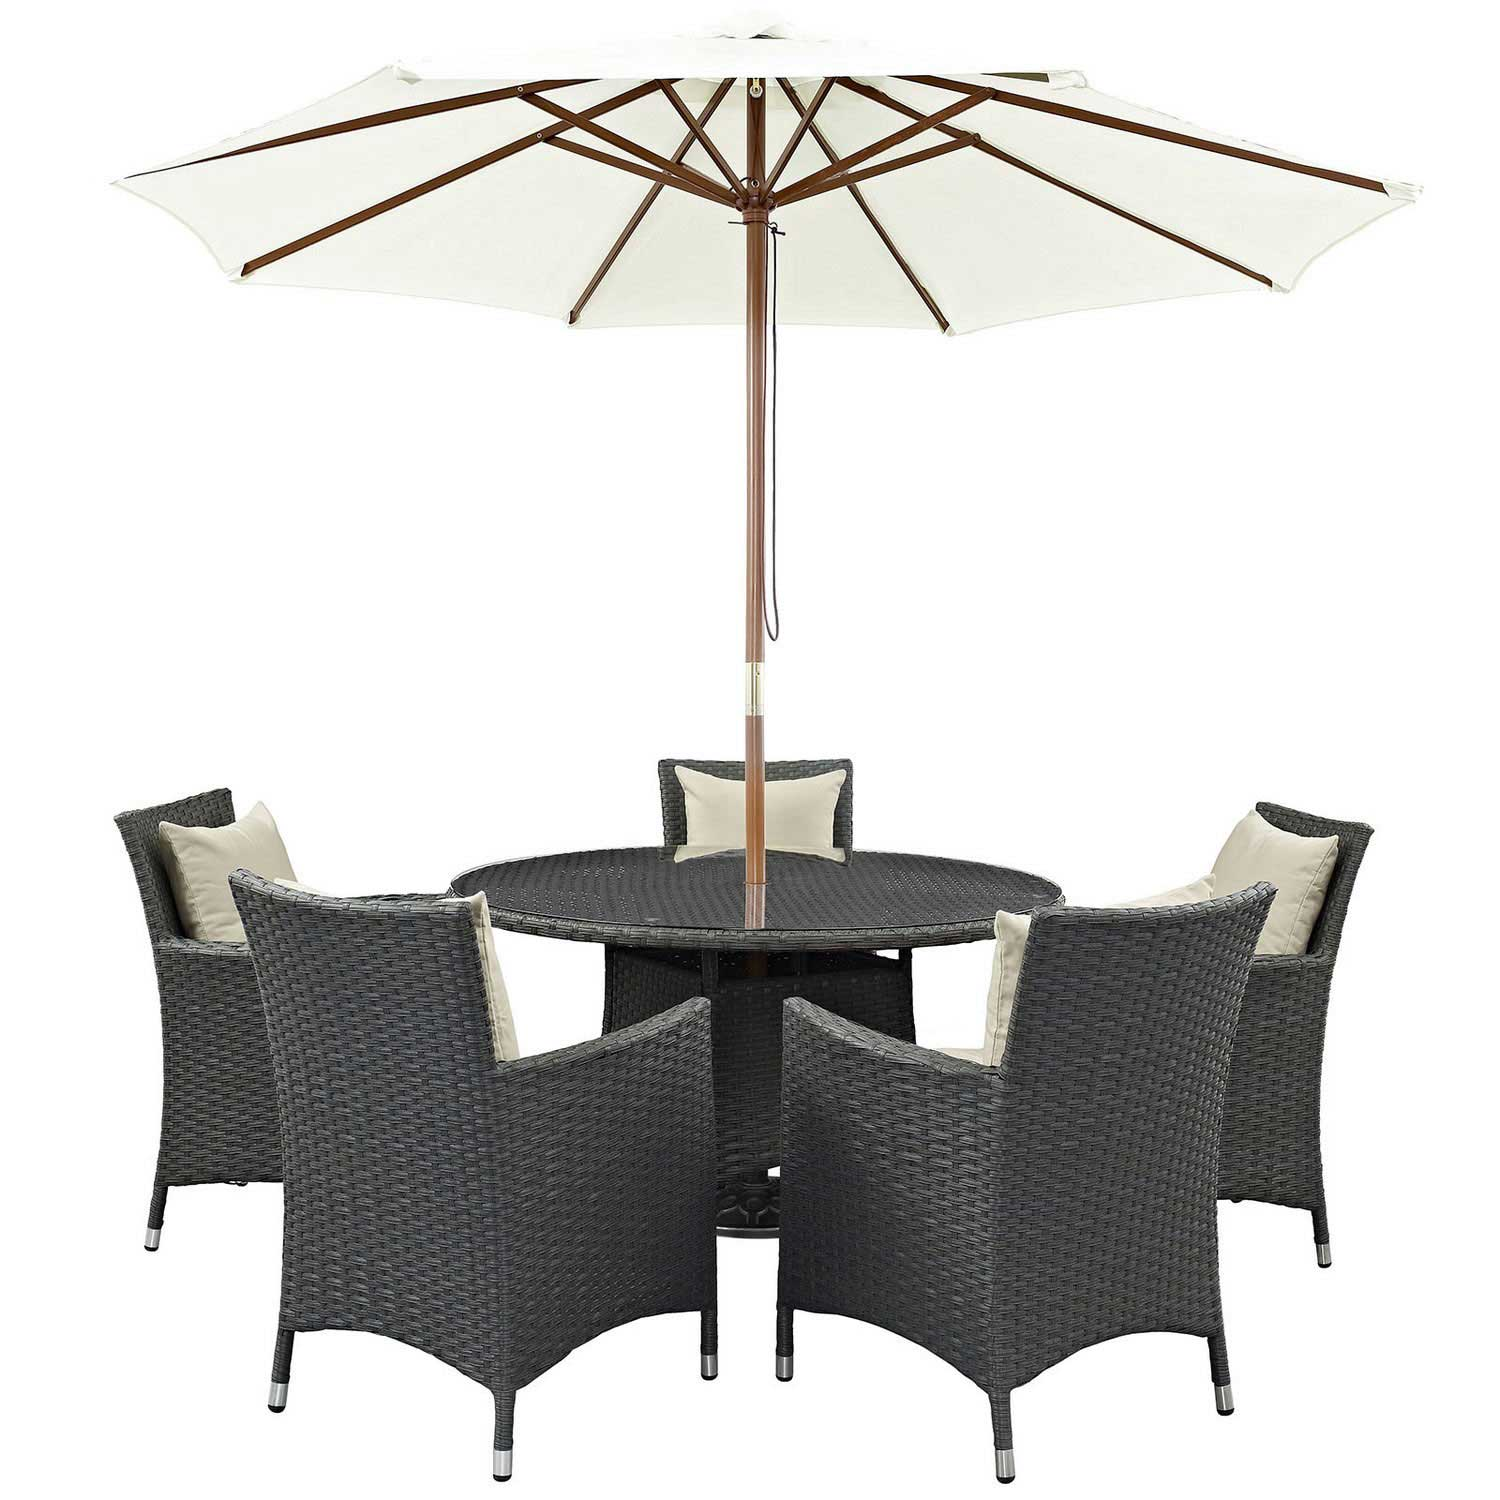 Modway Sojourn 7 Piece Outdoor Patio Sunbrella Dining Set - Antique Canvas Beige